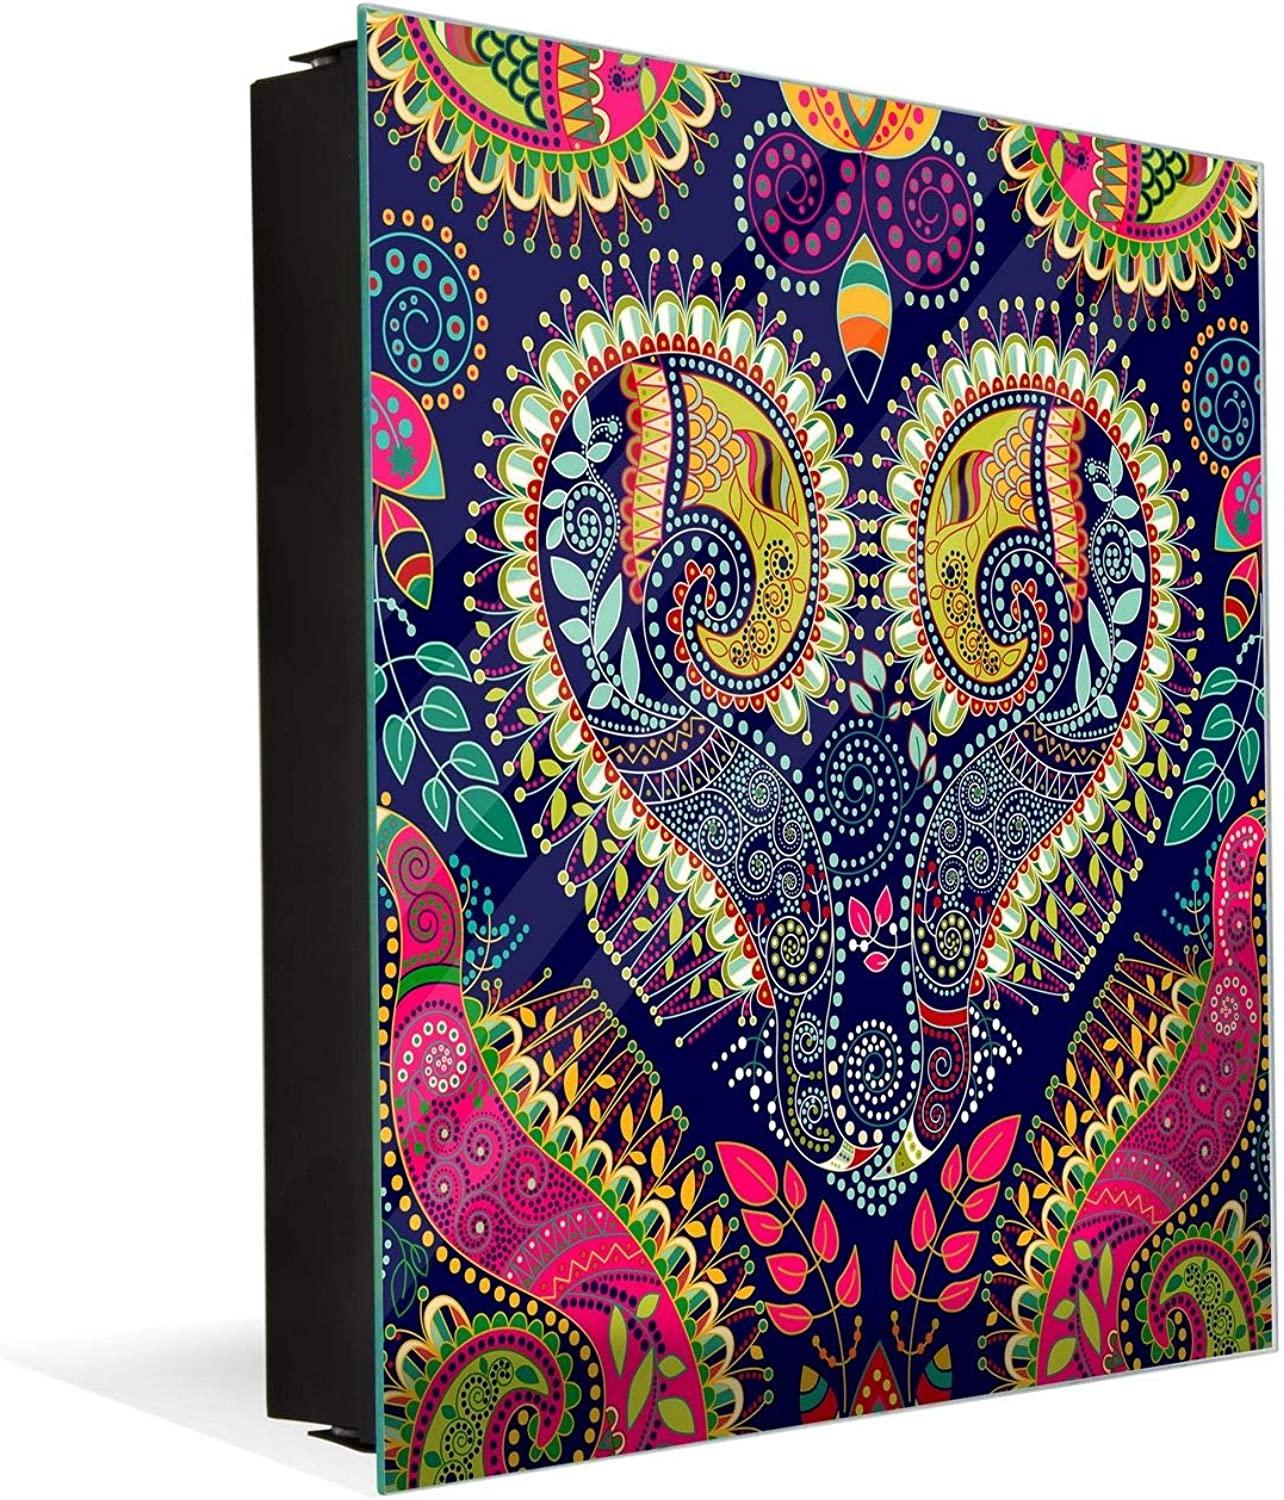 Concept Crystal Wall Mount Key Box Together with Decorative Dry Erase Board K01 Paisley Pattern